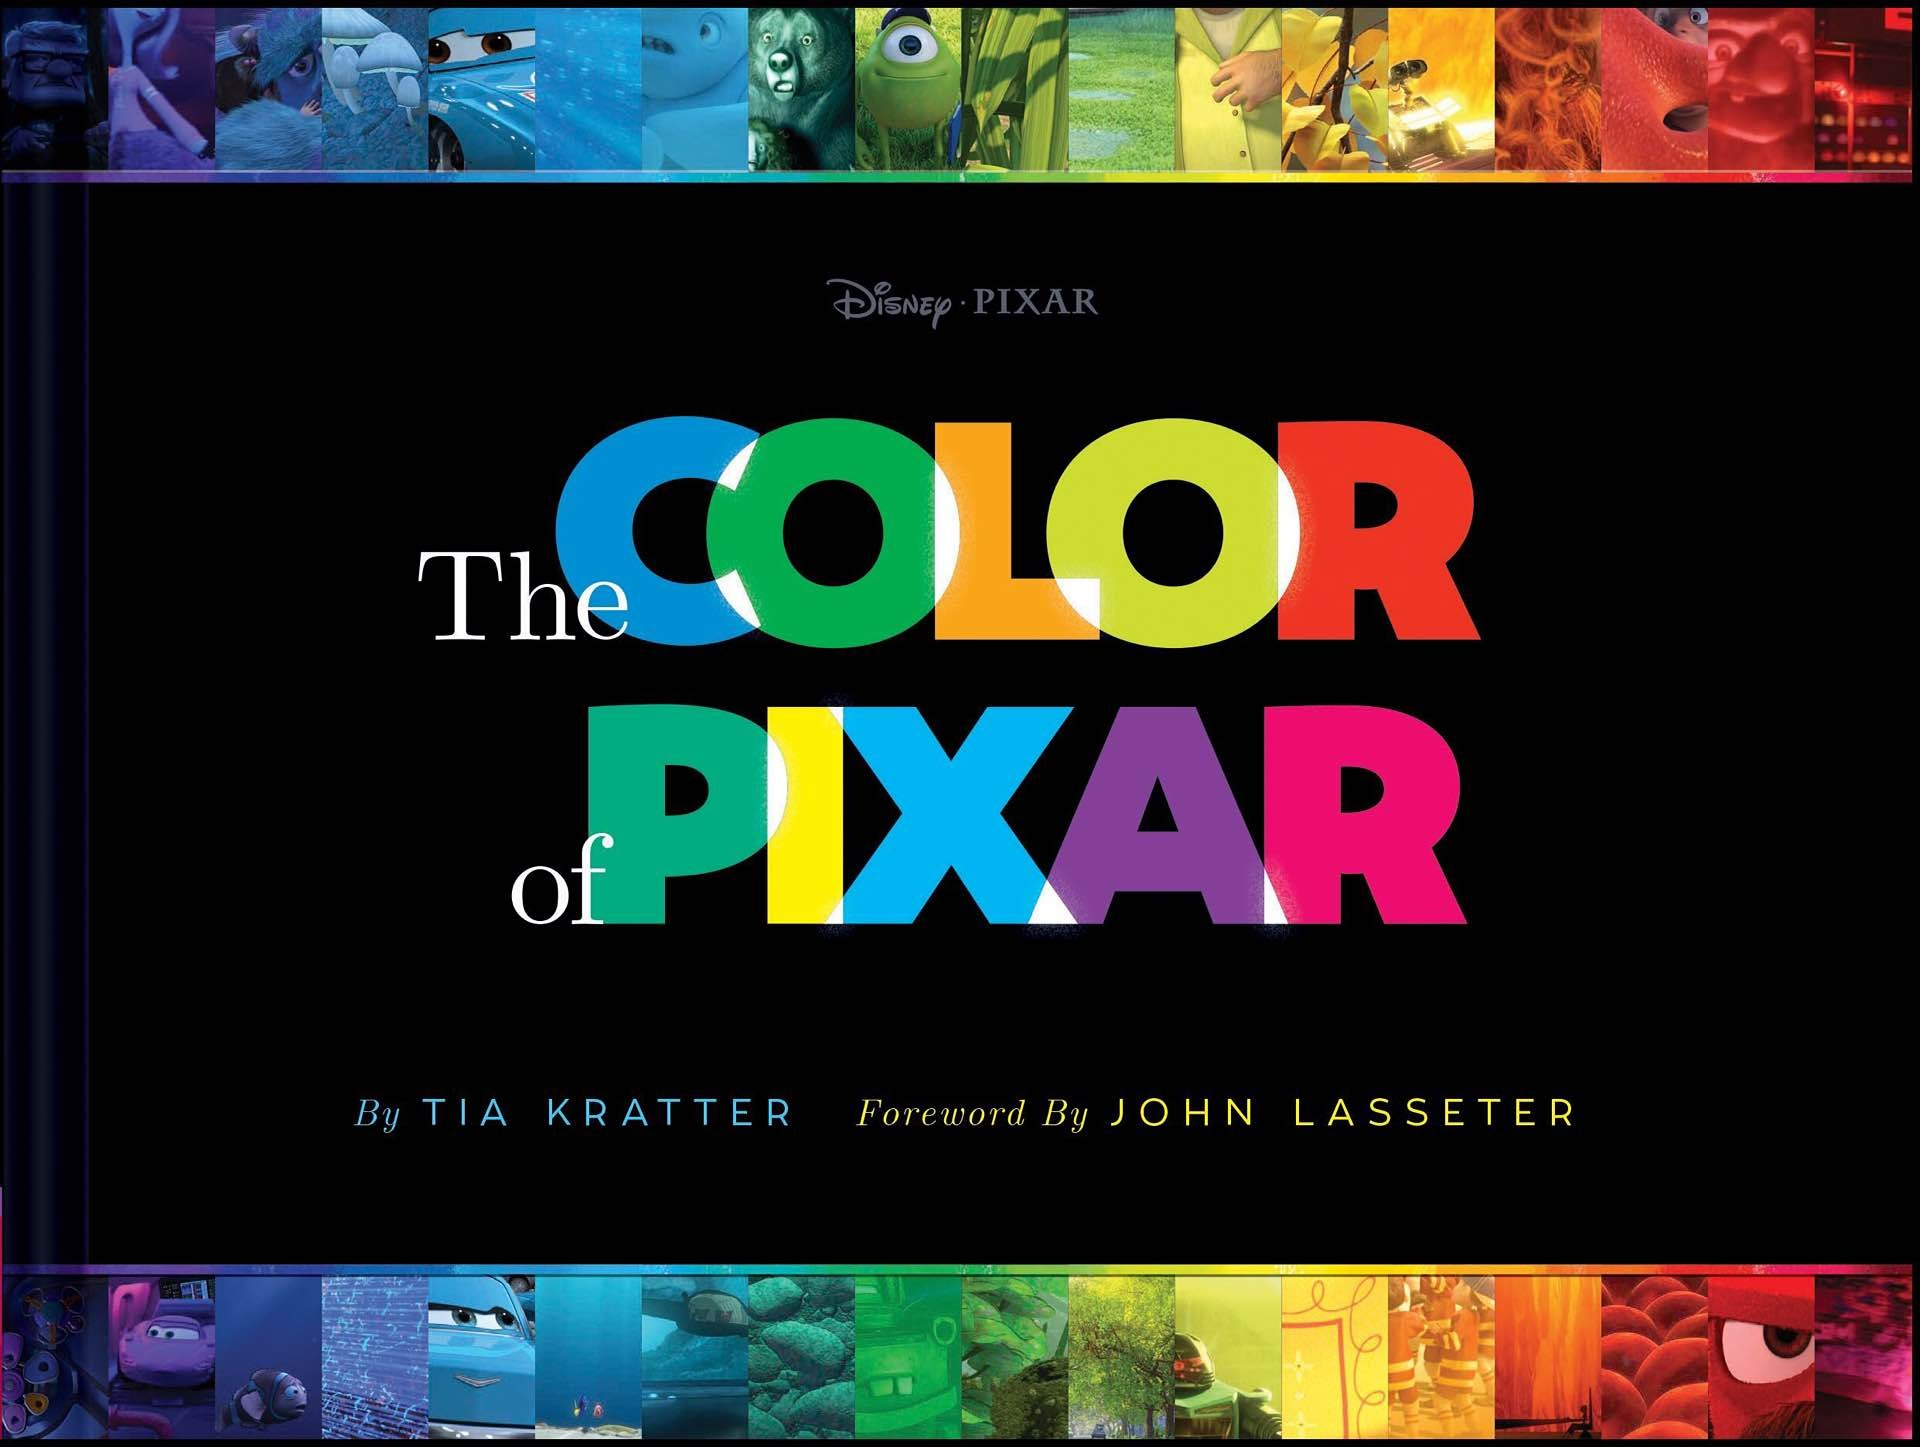 The Color of Pixar by Tia Kratter.